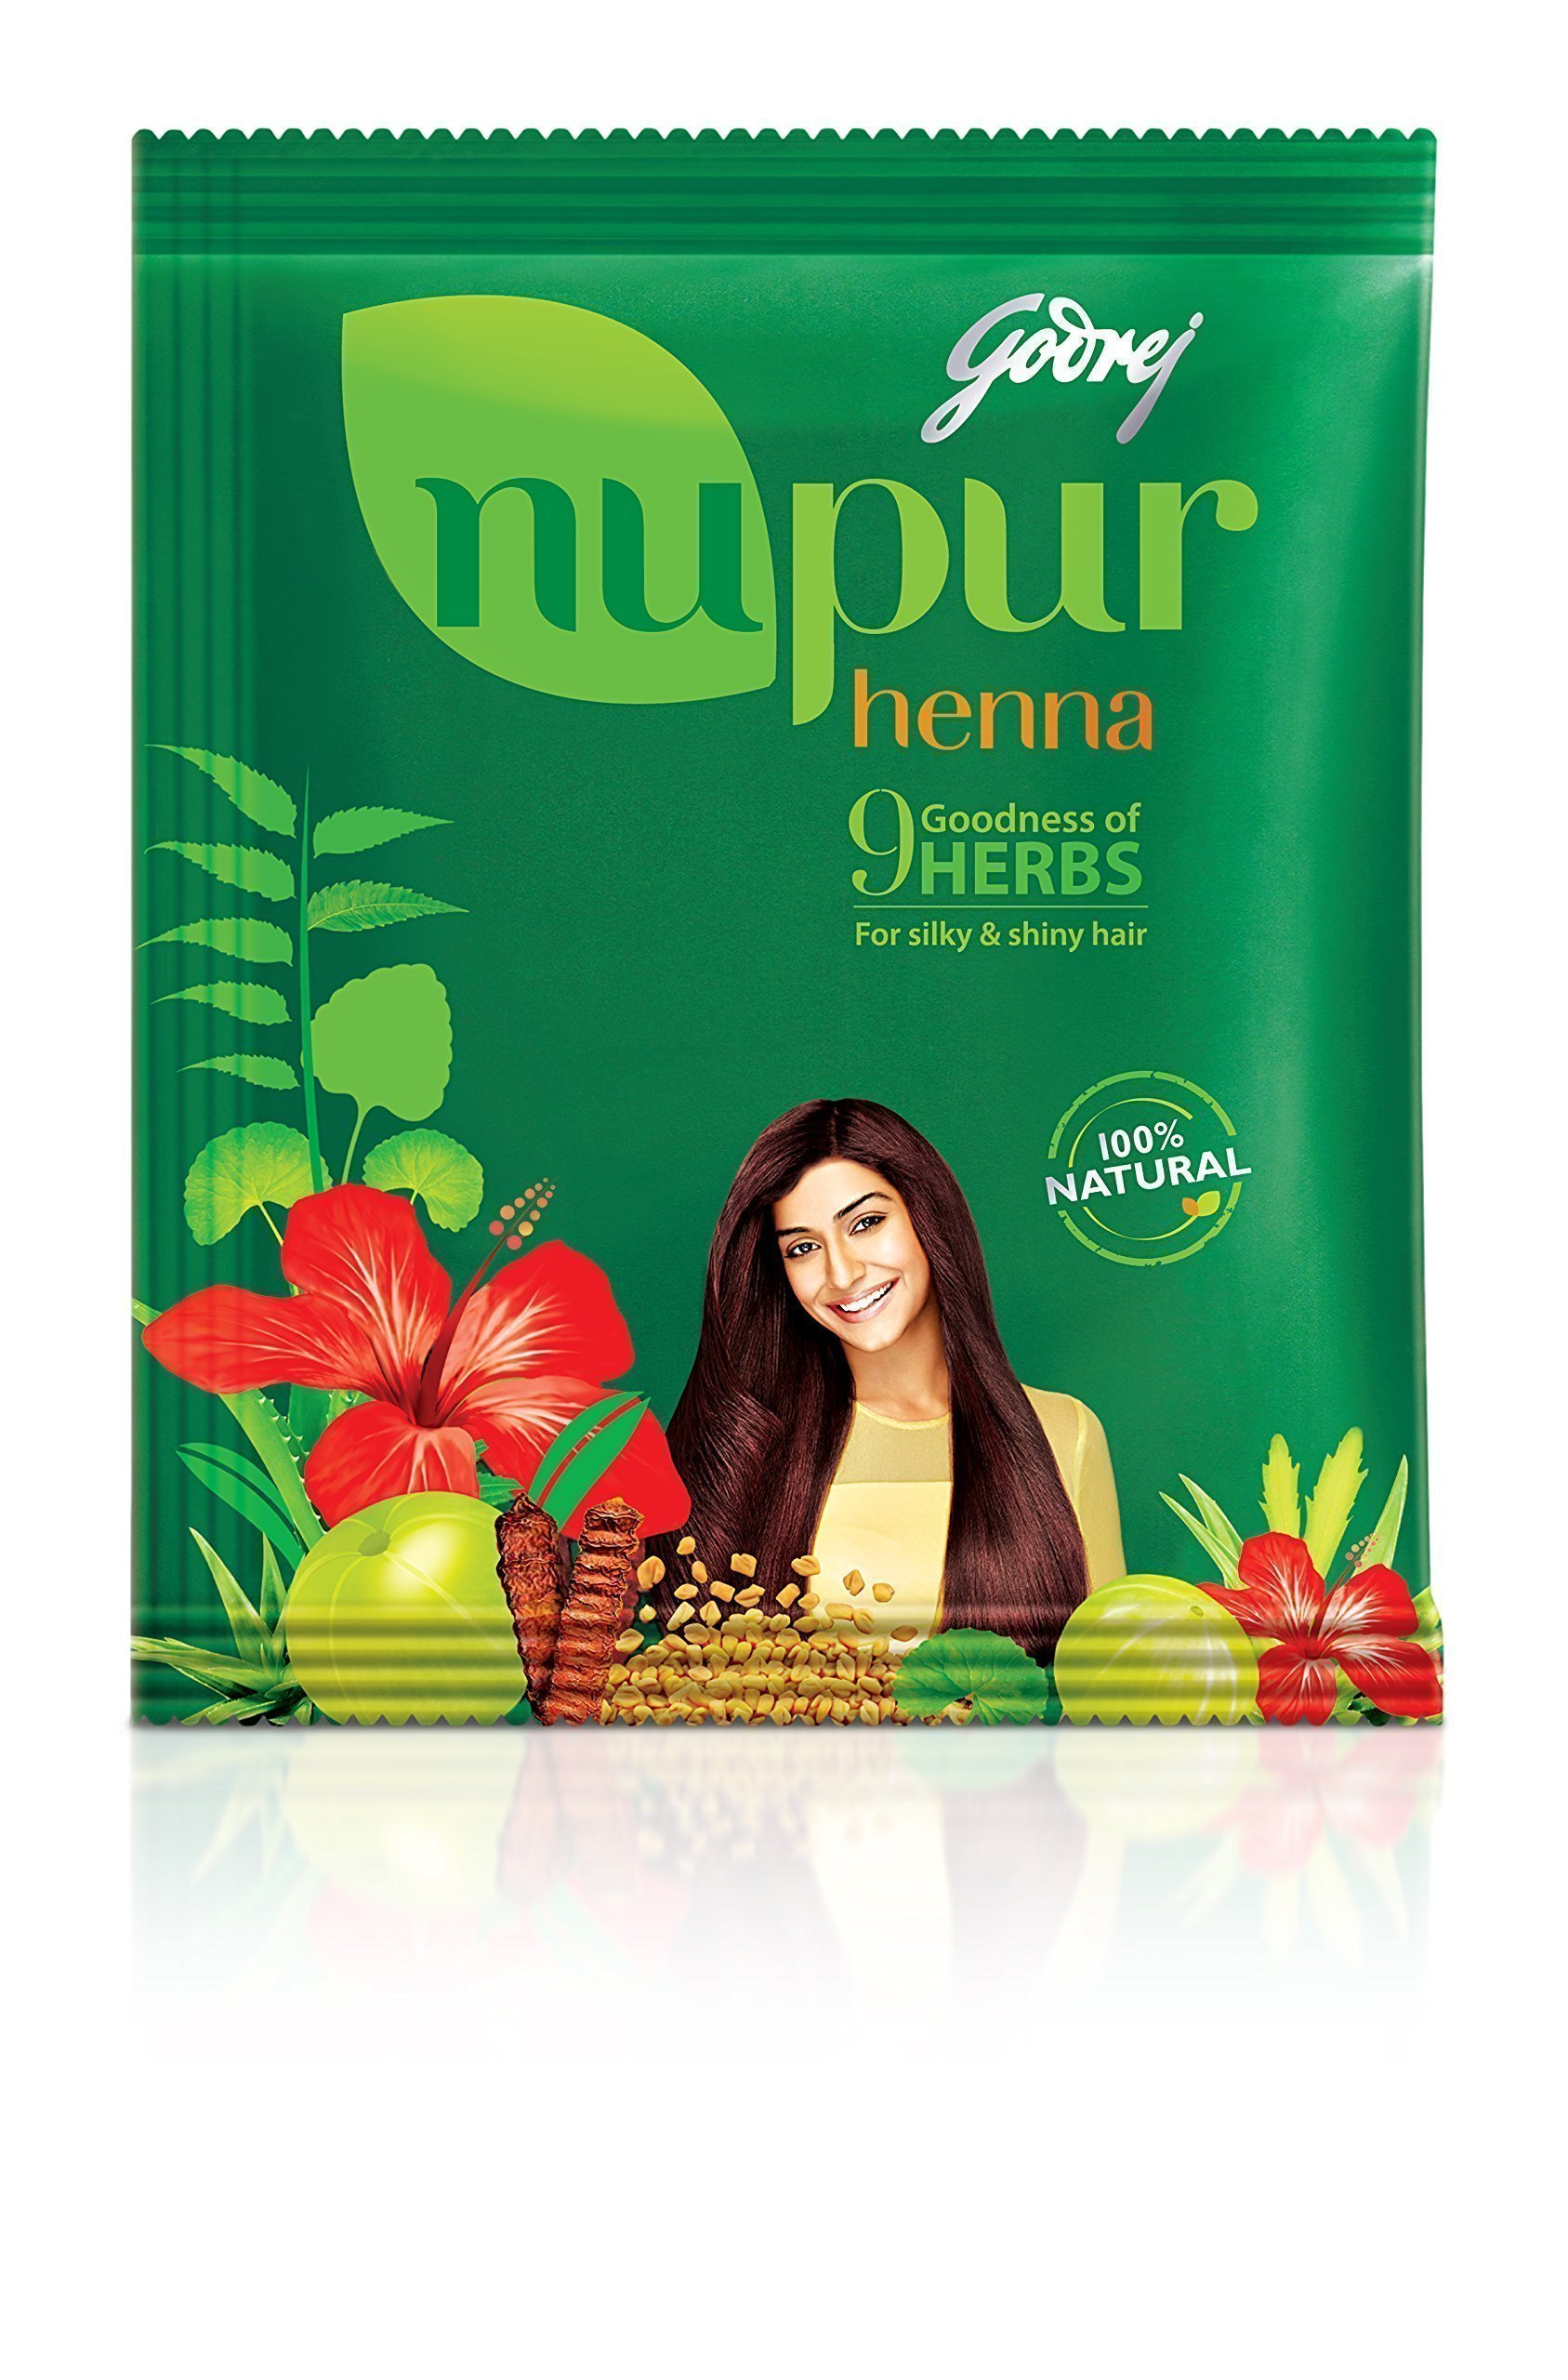 Cheapest amazon herbs - Godrej Nupur Henna Natural Mehndi For Hair Color With Goodness Of 9 Herbs 14 10 Ounce